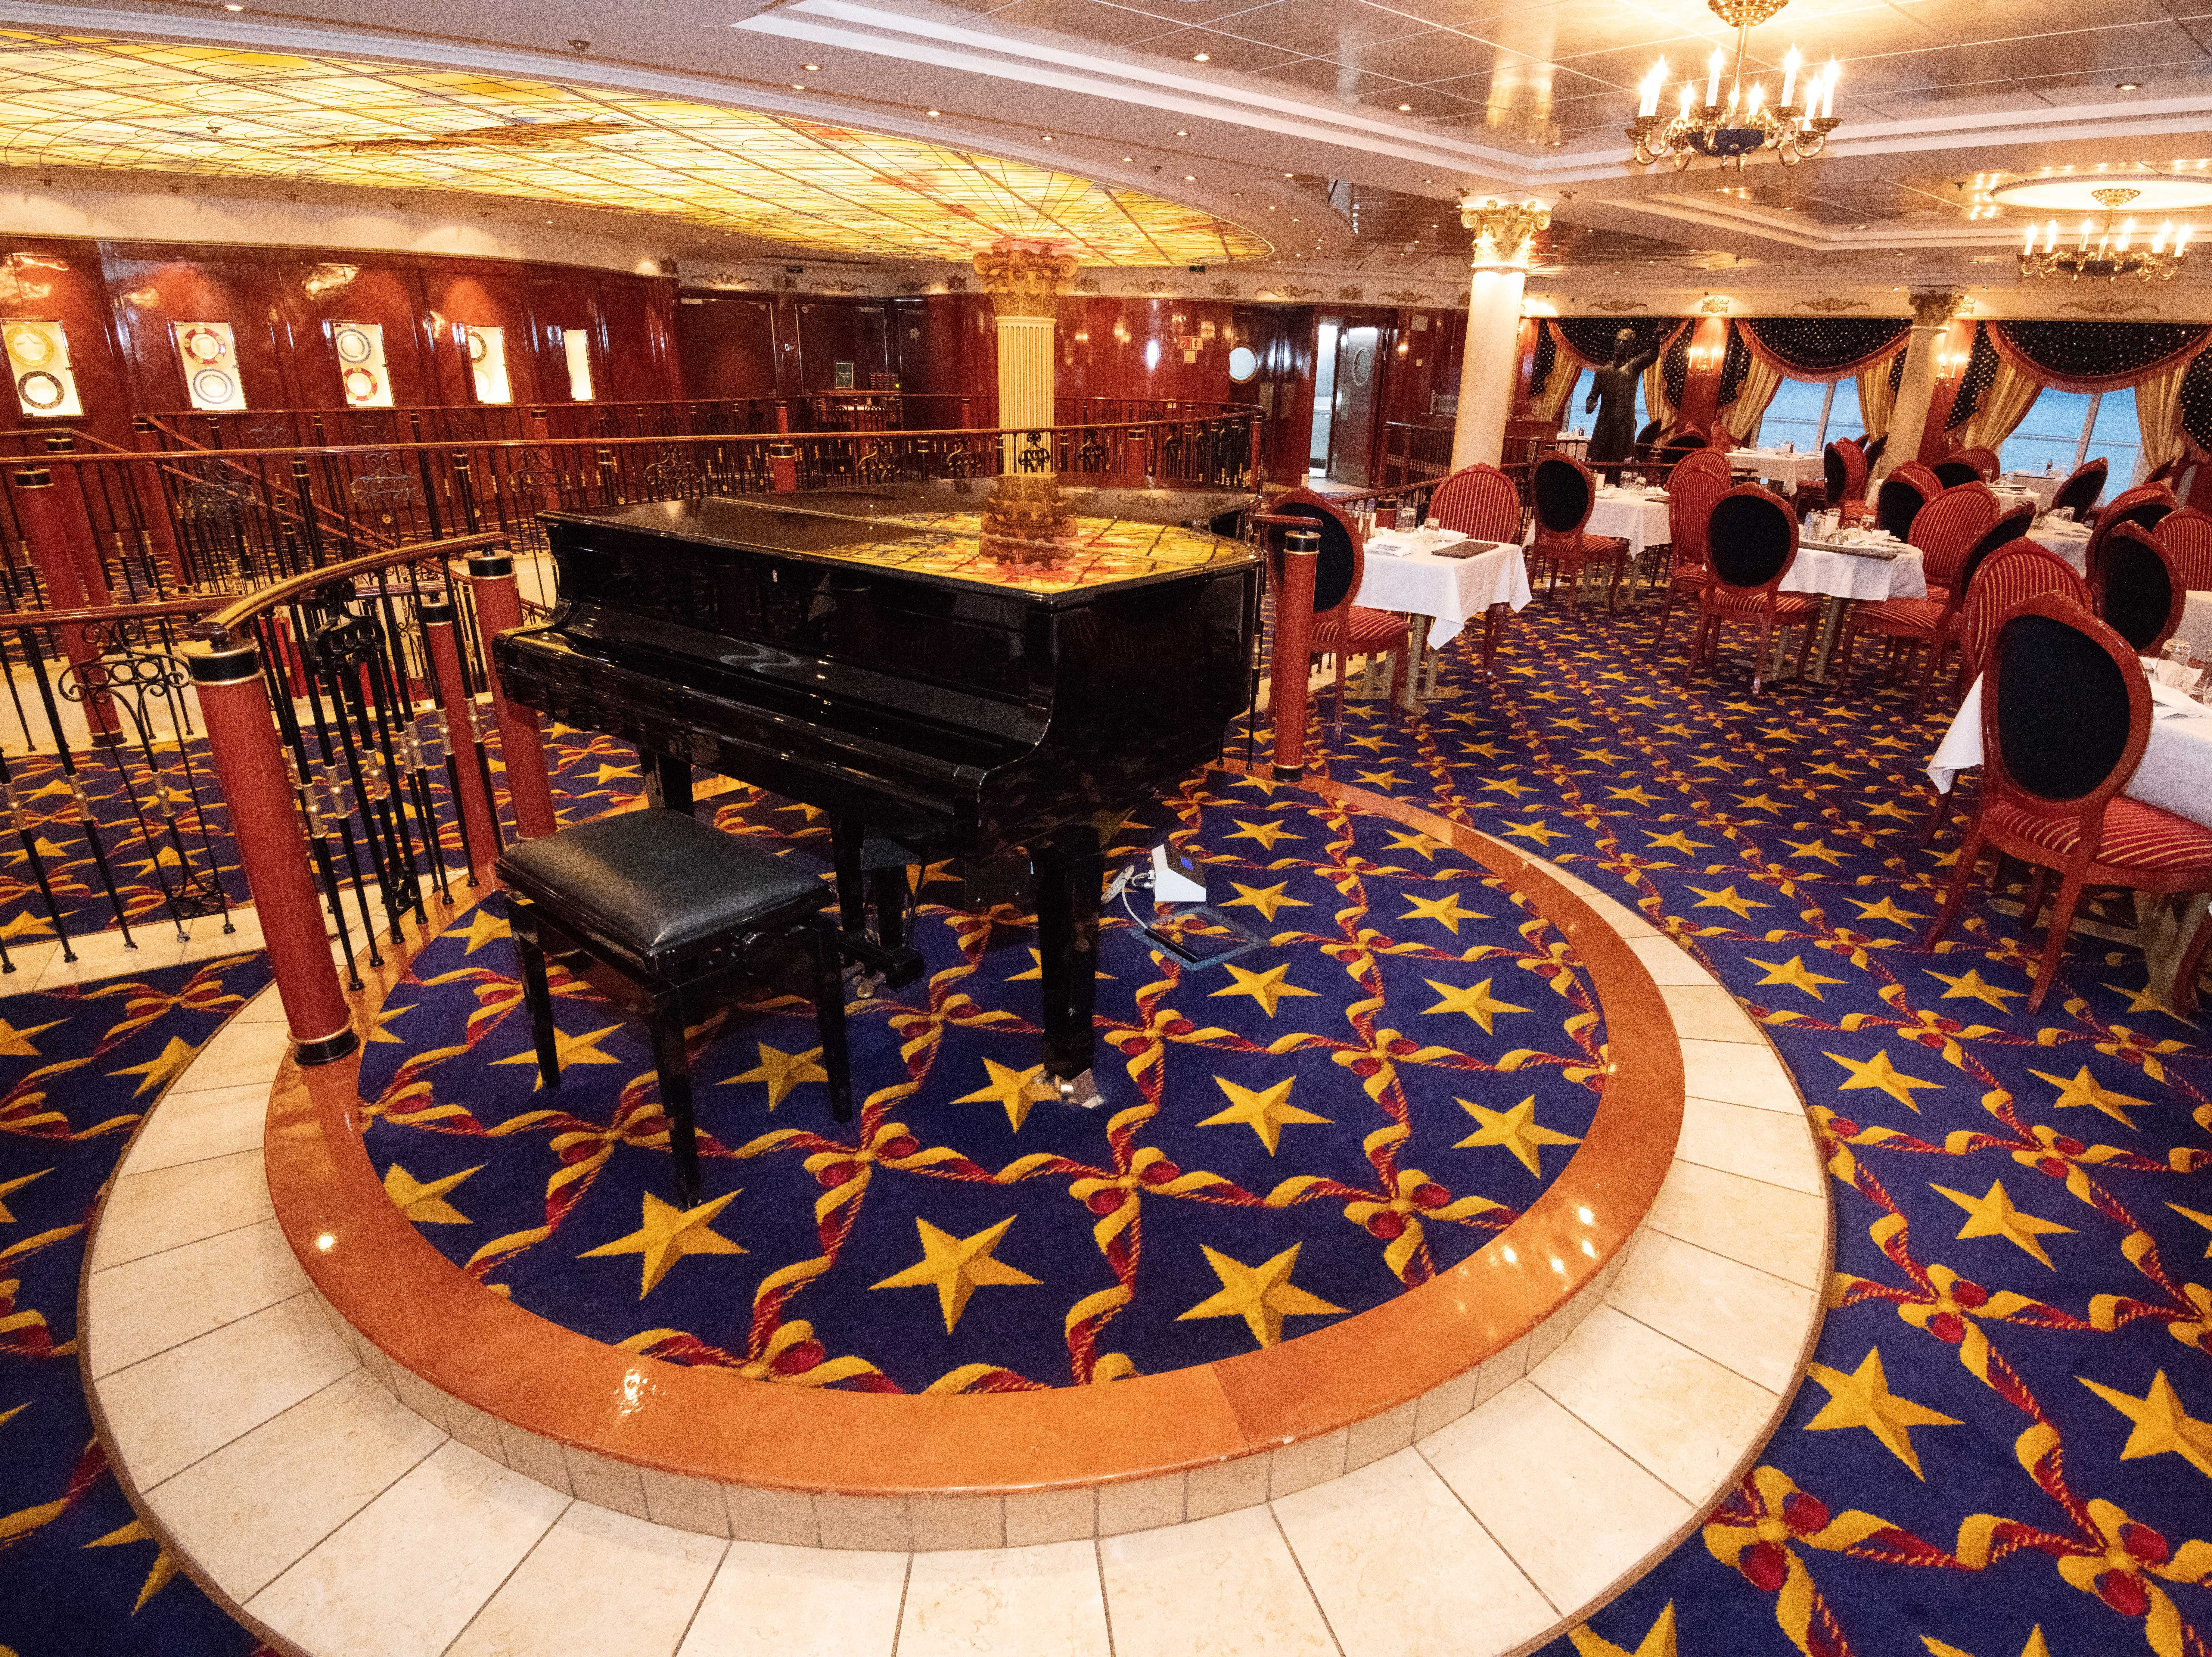 The Liberty Main Dining Room has its own grand piano near its entrance.